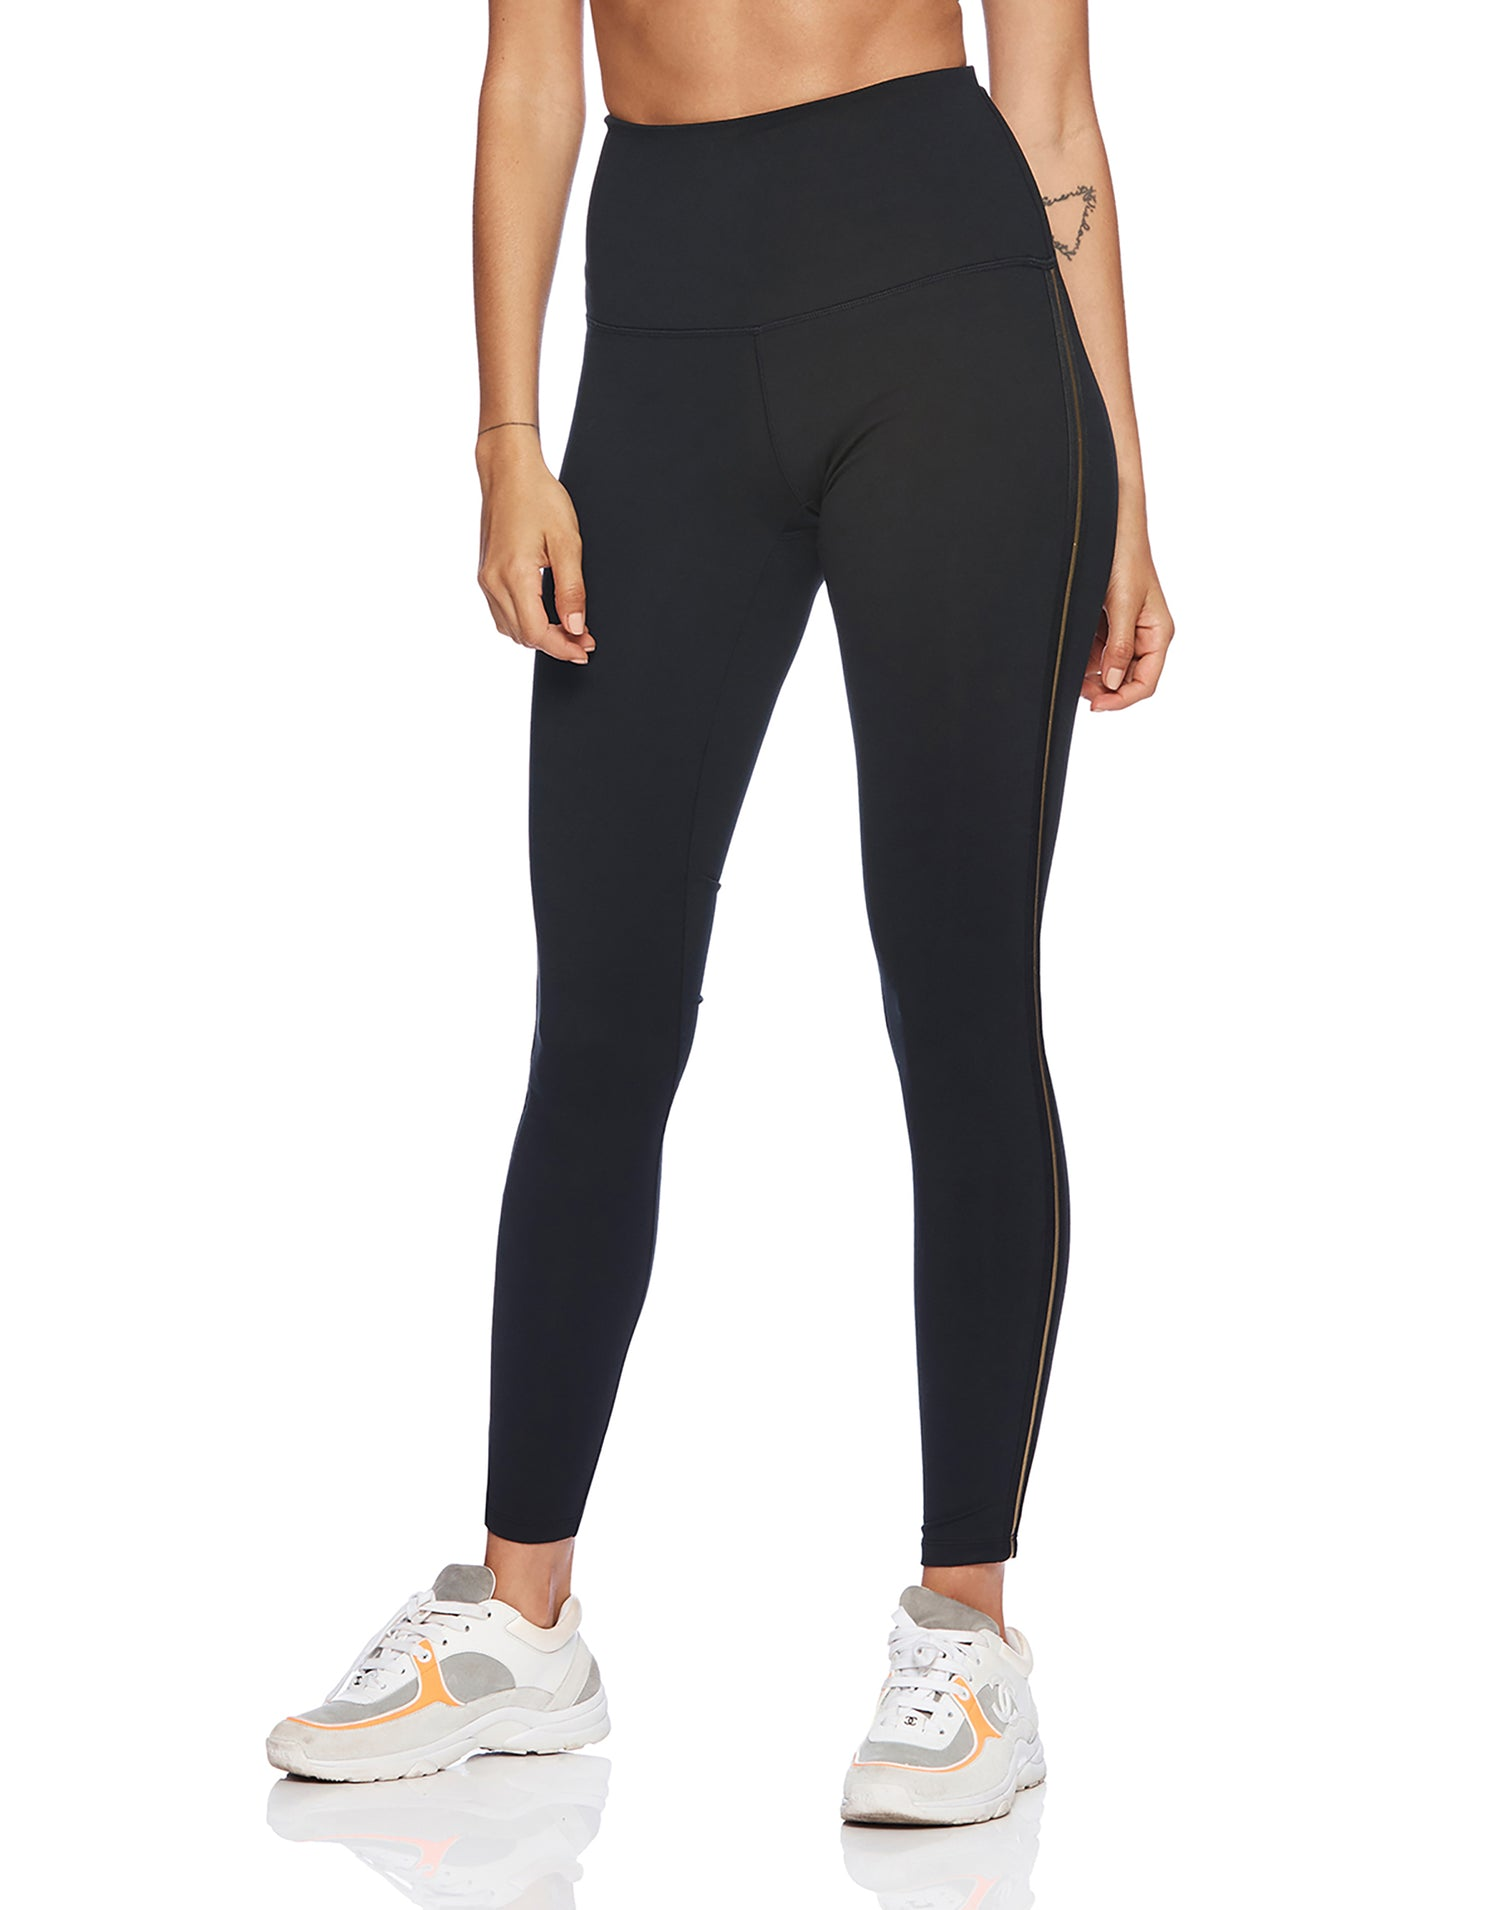 Lolo Legging in Black with Gold Stripe - alternate front view